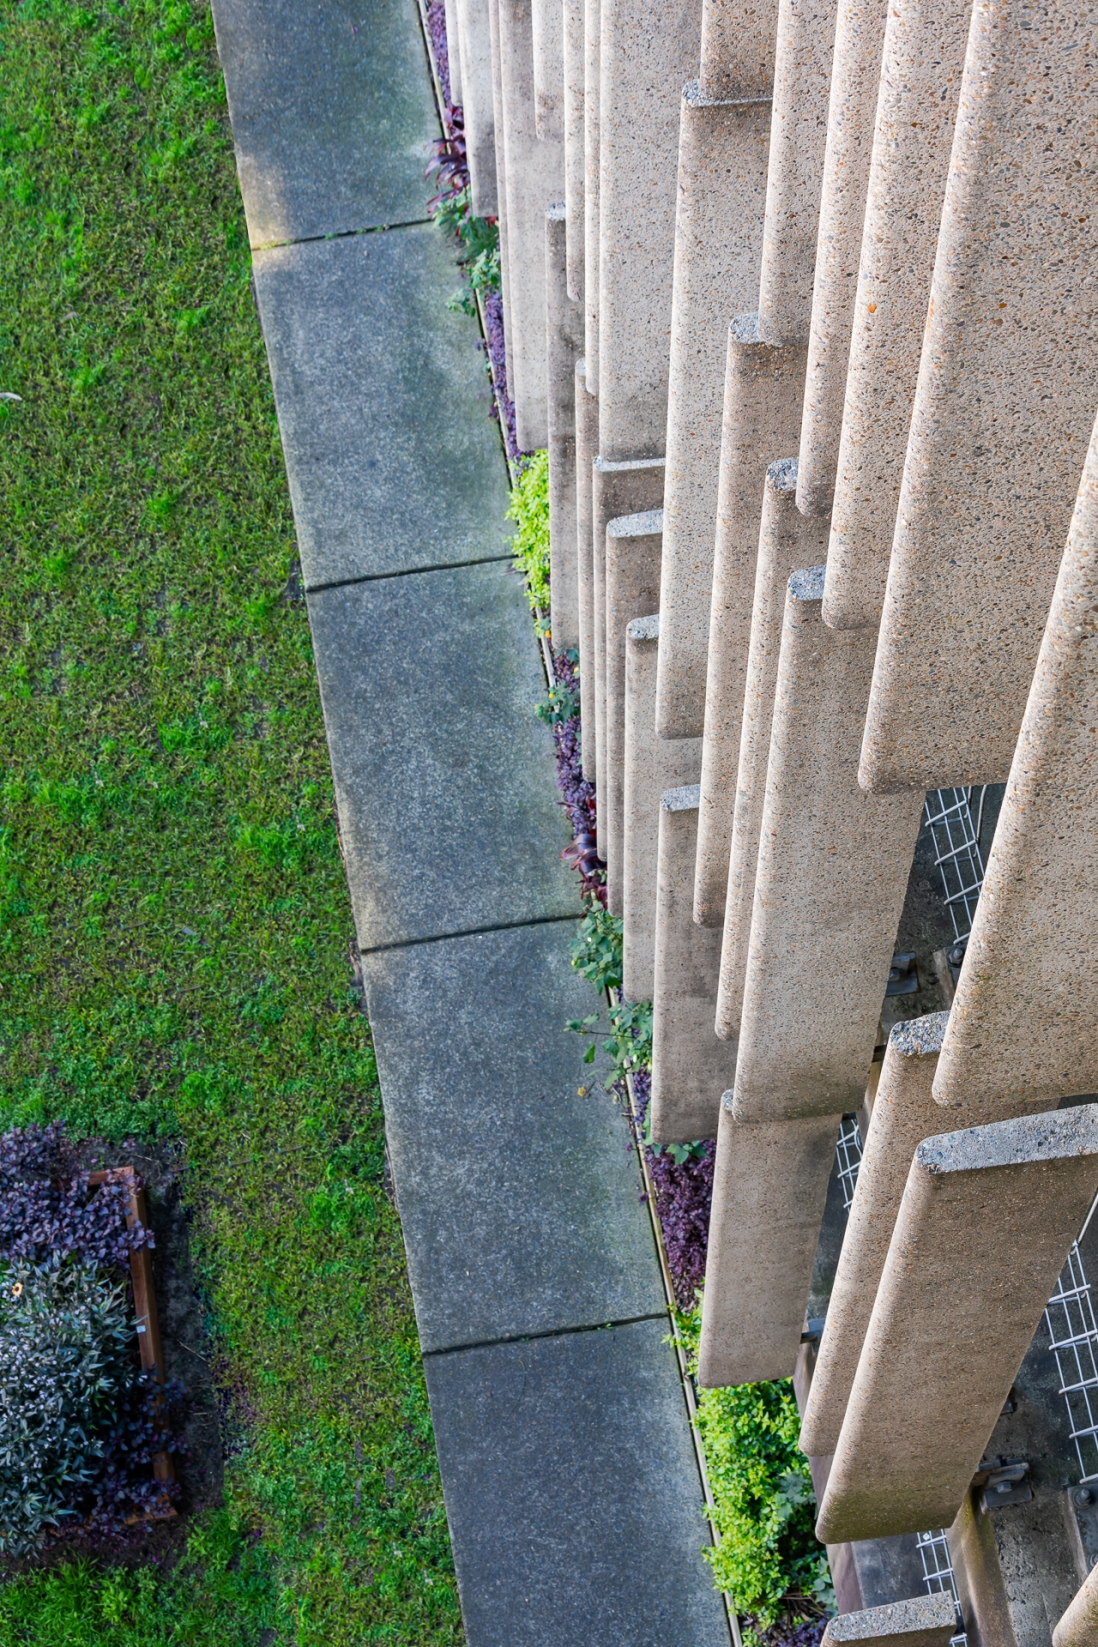 View looking down on an angle over the front of a building with some grass at the bottom.